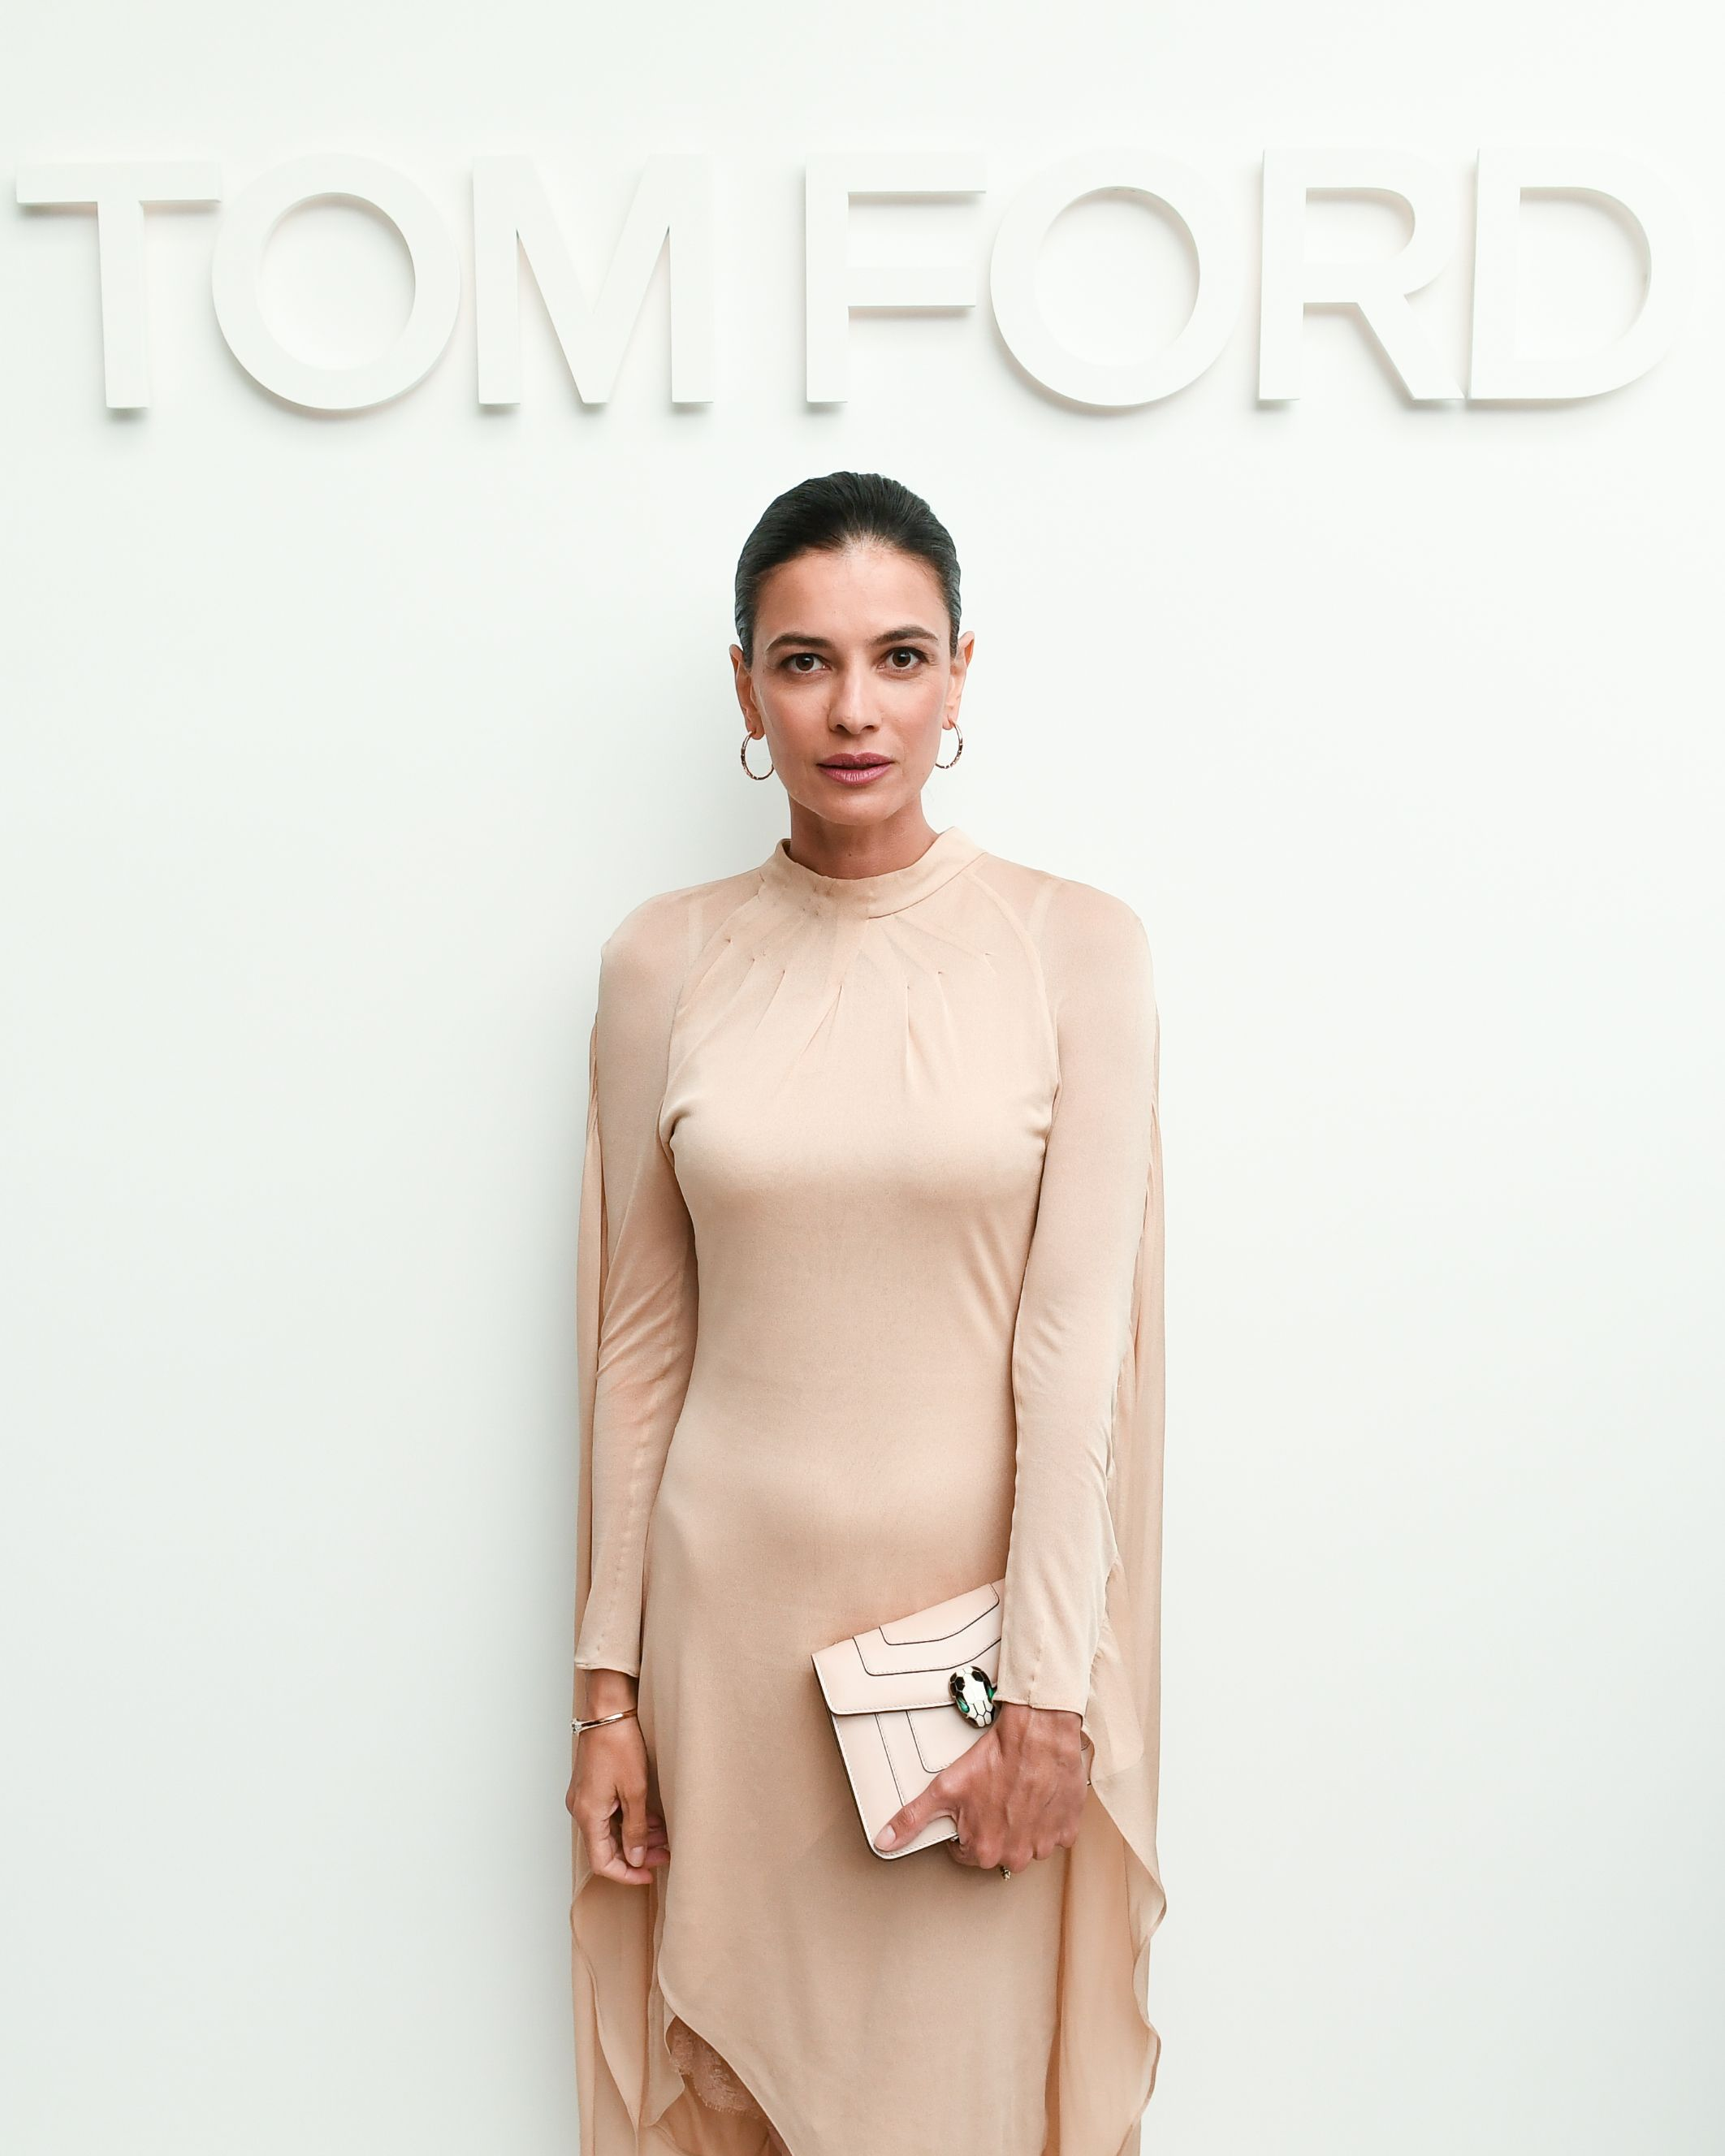 Leila Yavari Leila Yavari attends Tom Ford's party to celebrate the launch of his new Soleil Summer 2019 beauty collection on April 10 in Beverly Hills.